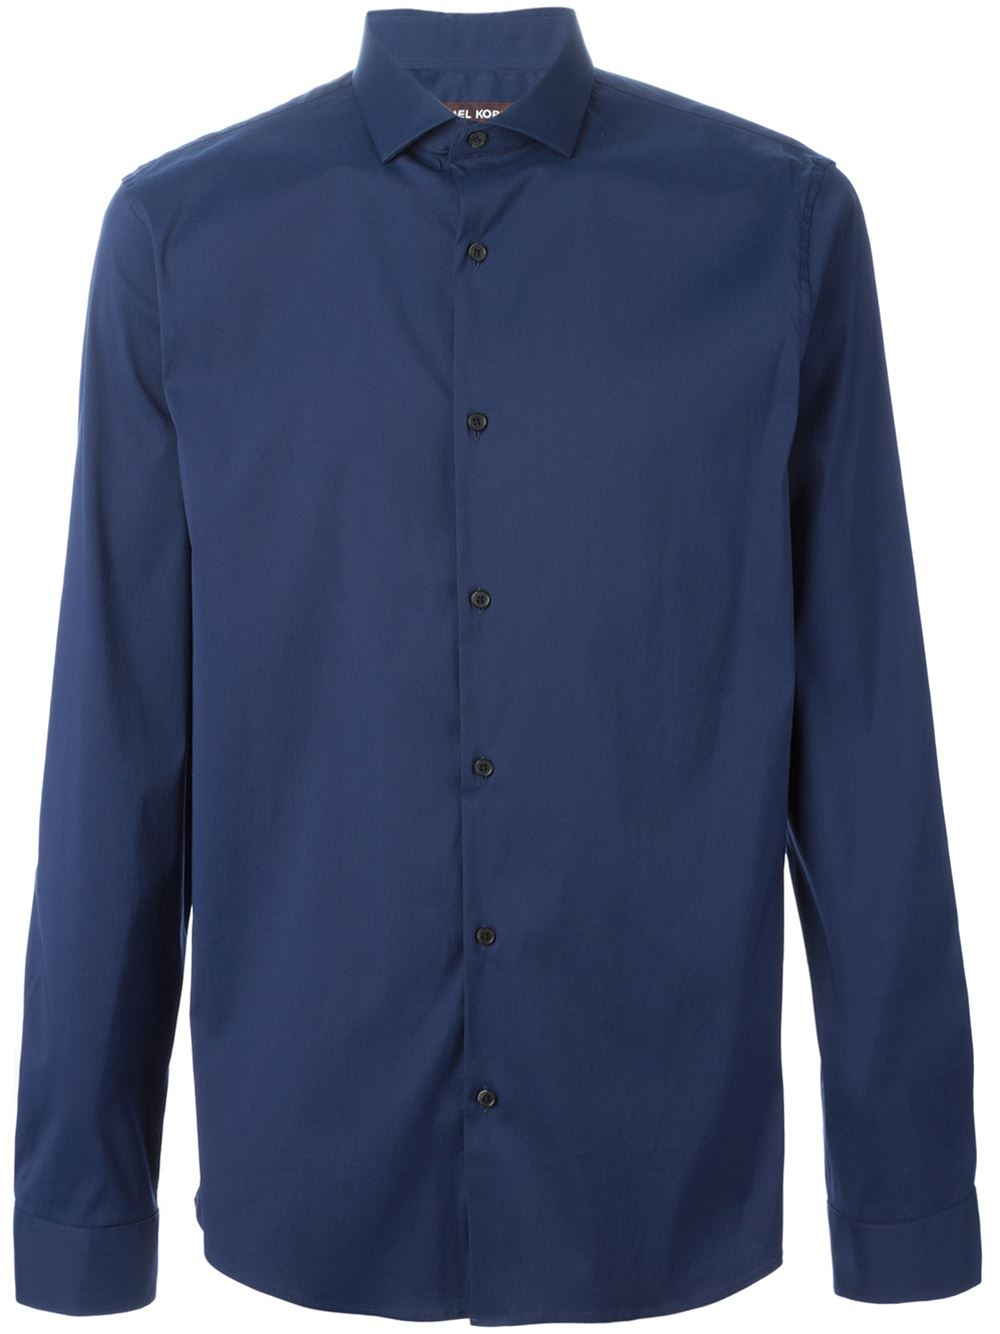 Michael kors spread collar shirt in blue for men lyst for What is a spread collar shirt